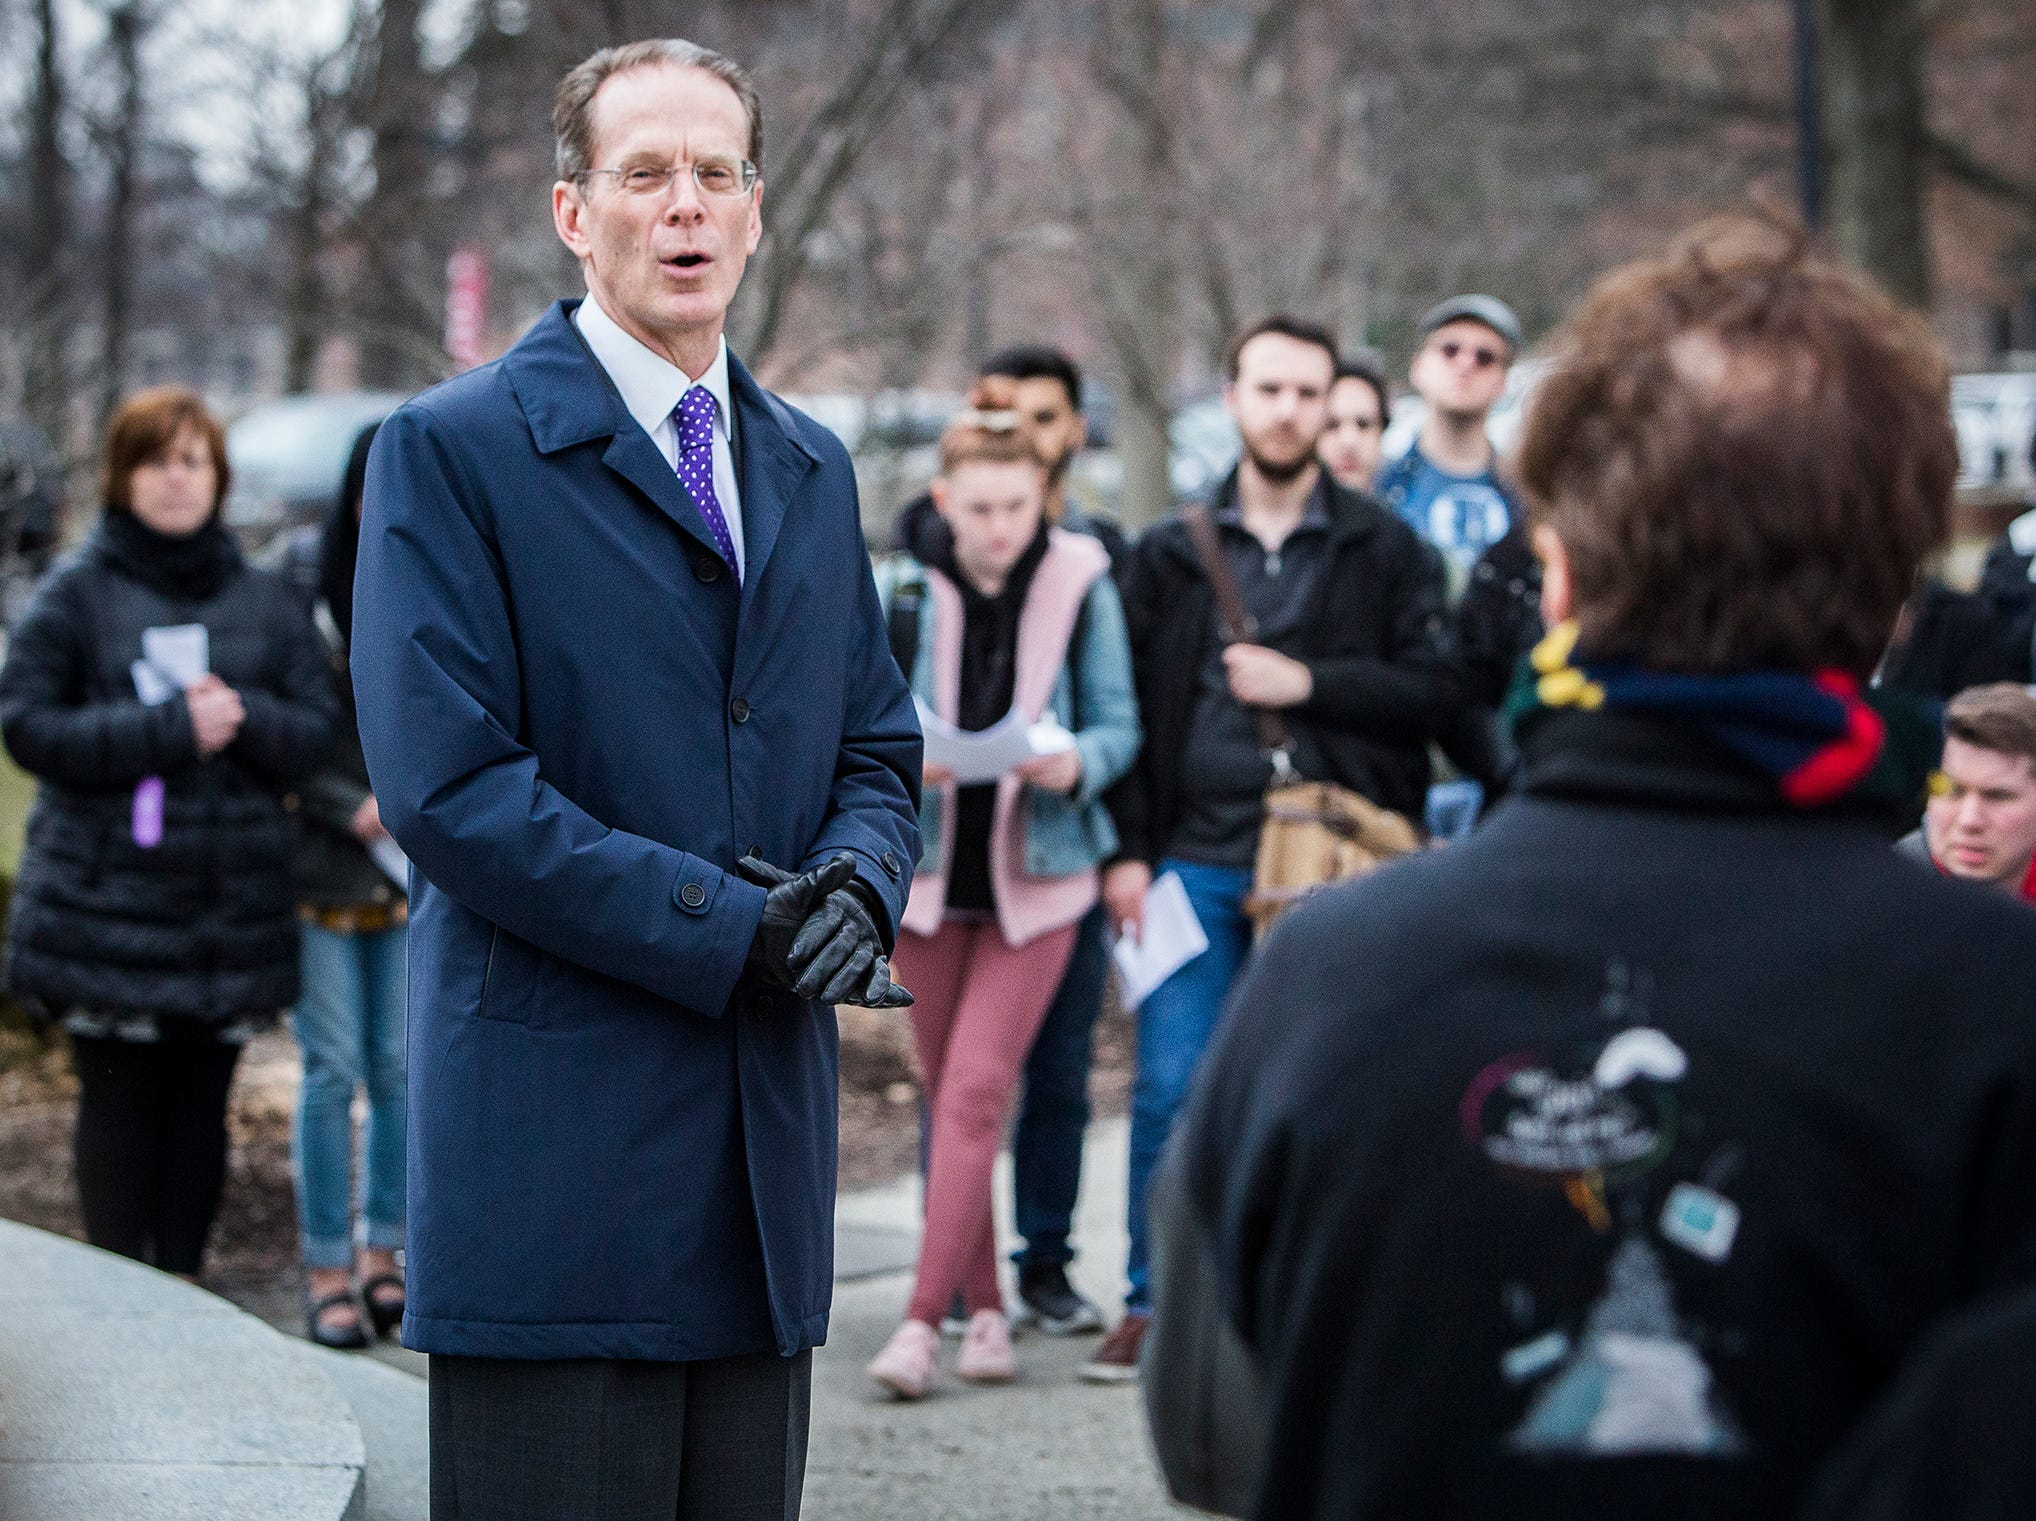 Ball State president Geoffrey Mearns speaks to attendees of a vigil for the victims of the Christchurch, New Zealand mosque shootings near the university's Beneficence statue Thursday afternoon.